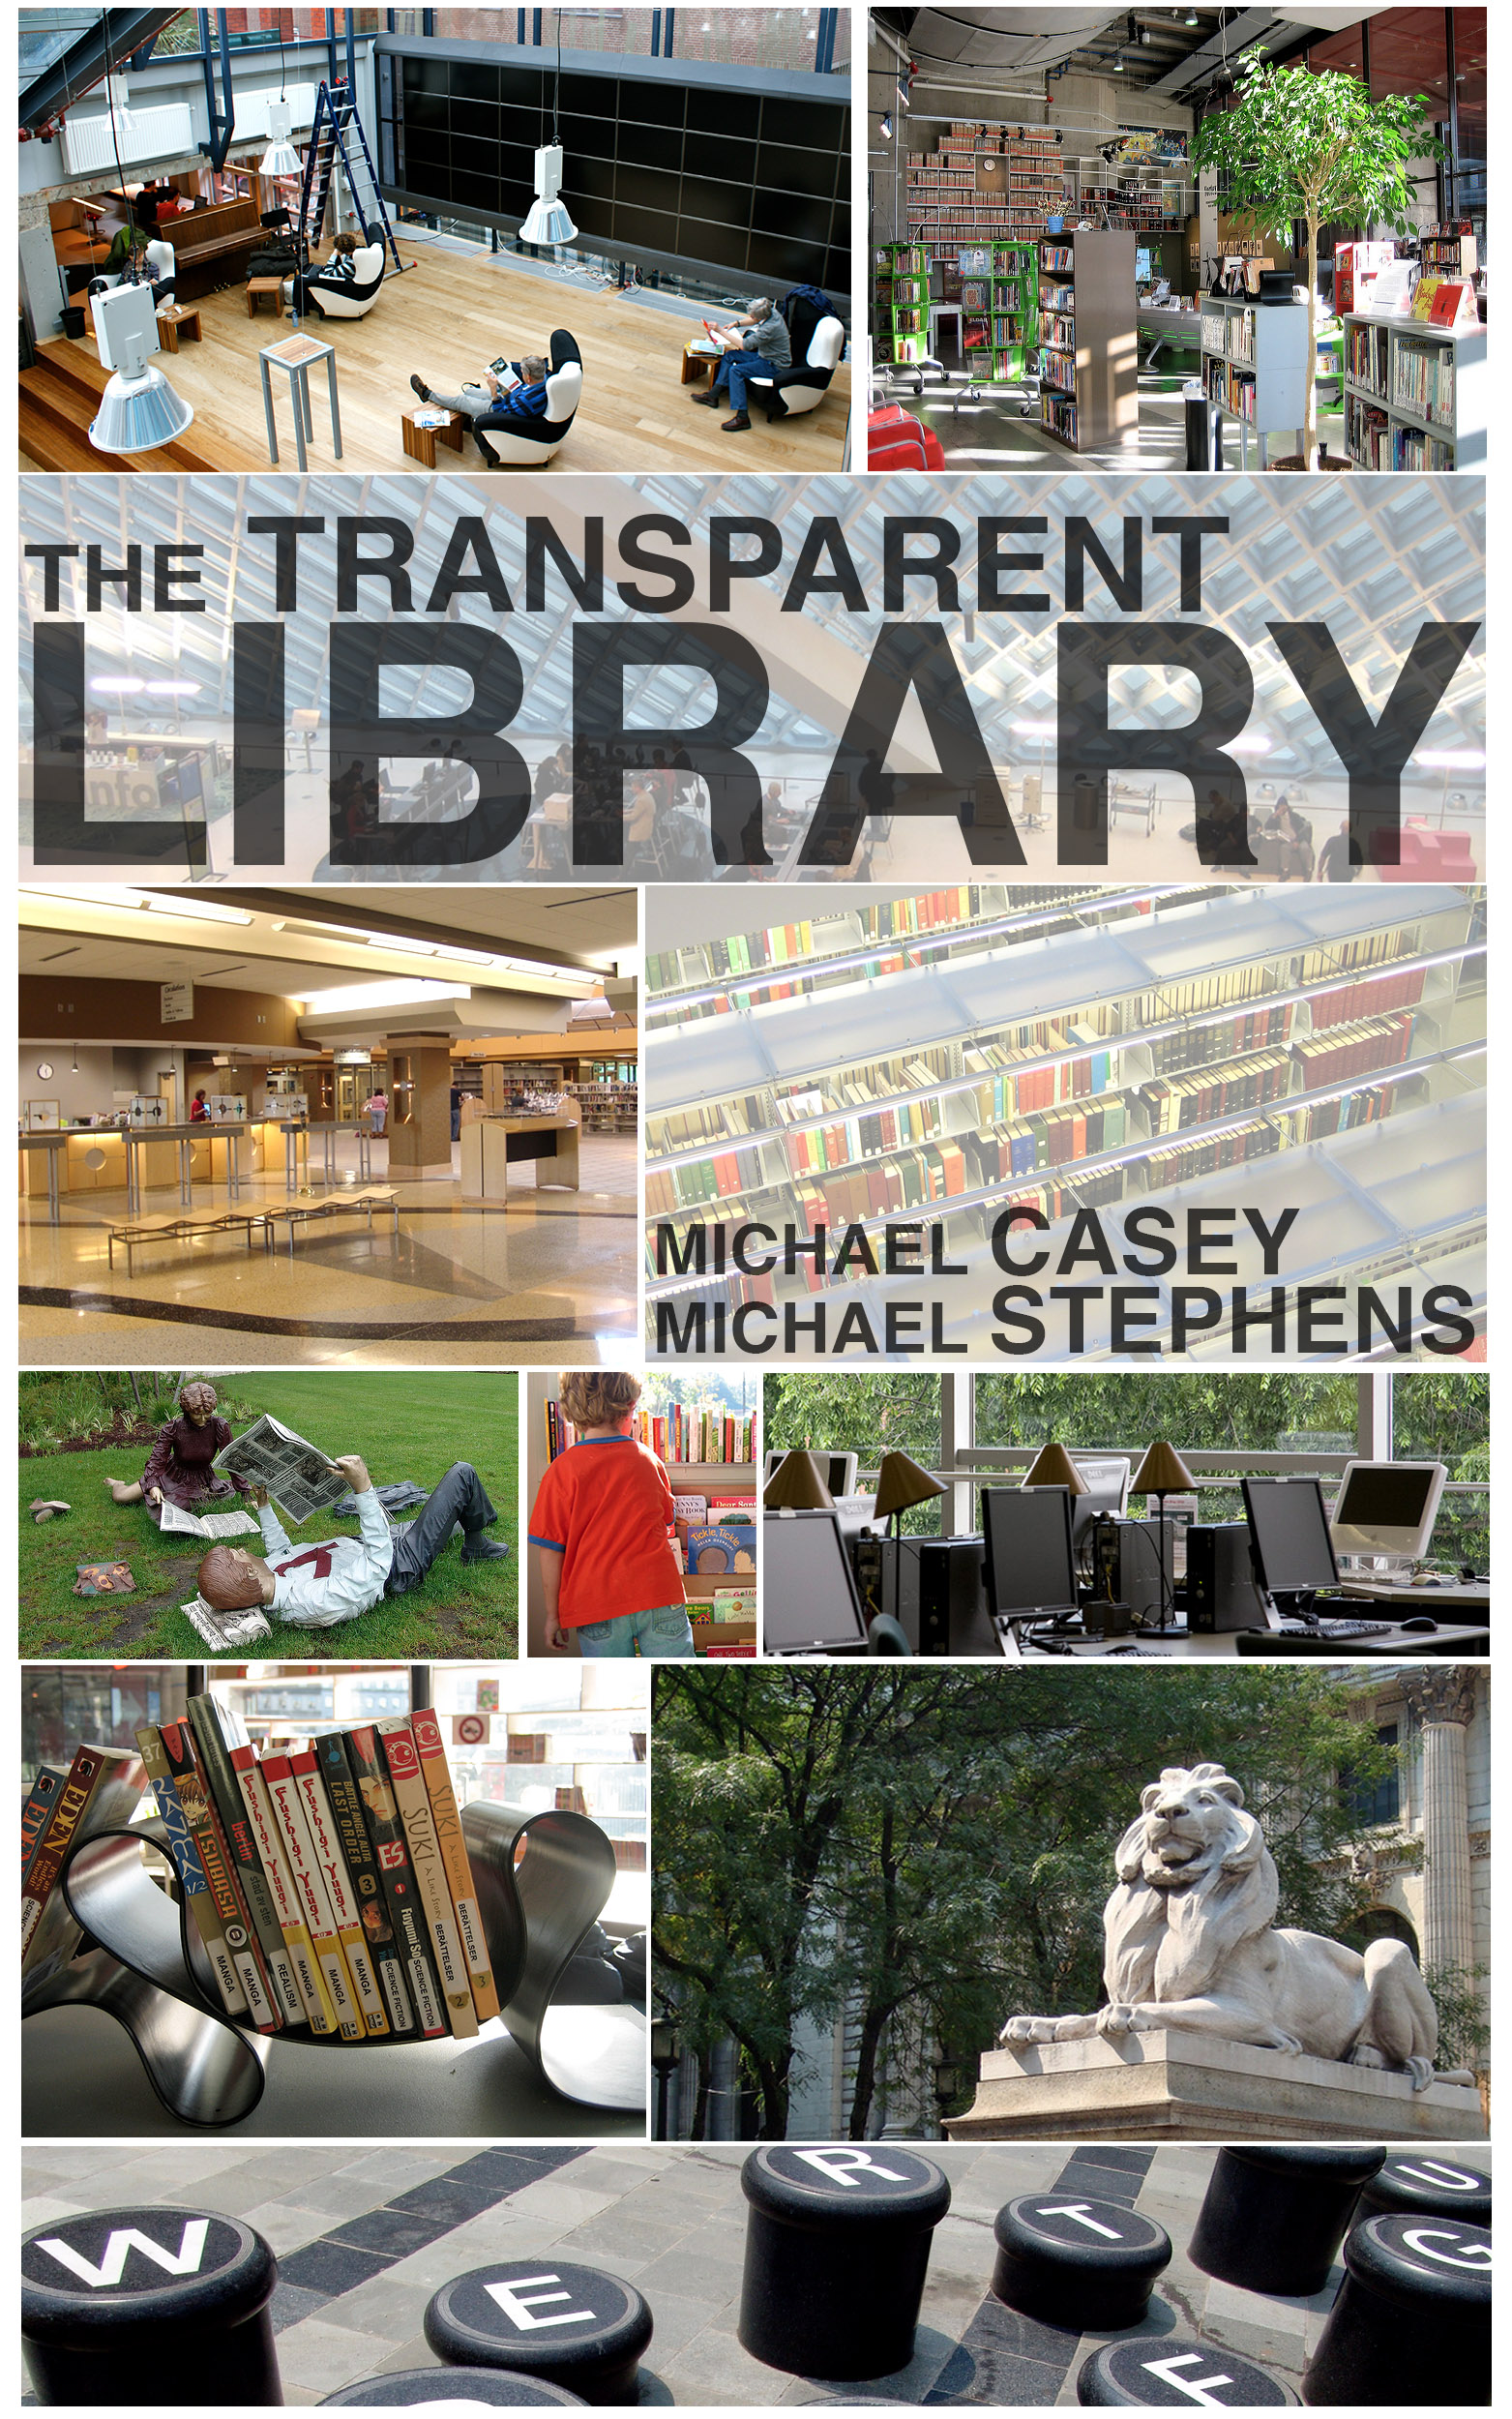 """News: Download """"The Transparent Library"""" e-book here!"""